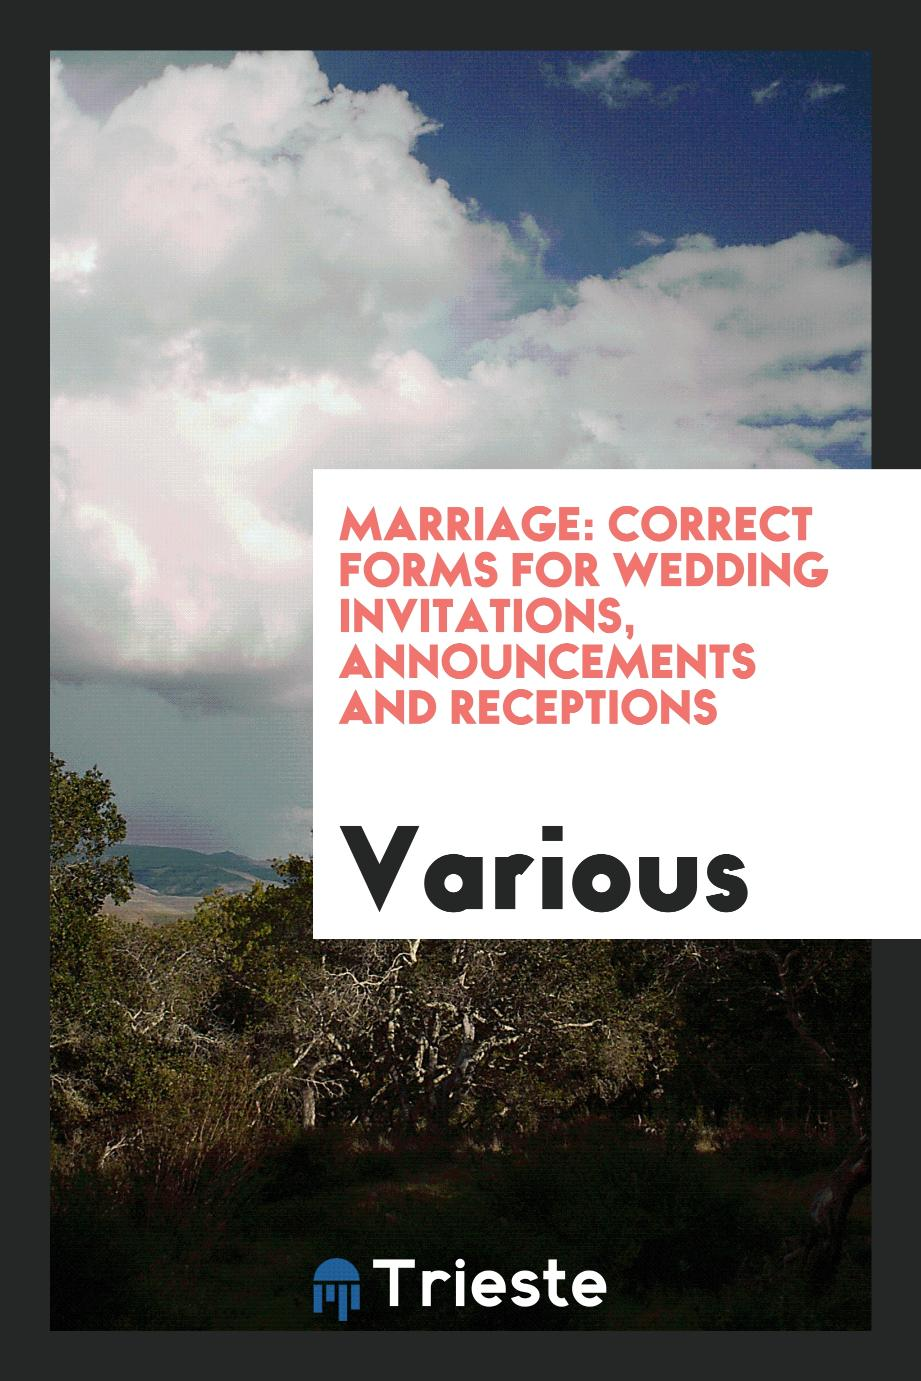 Marriage: Correct Forms for Wedding Invitations, Announcements and Receptions